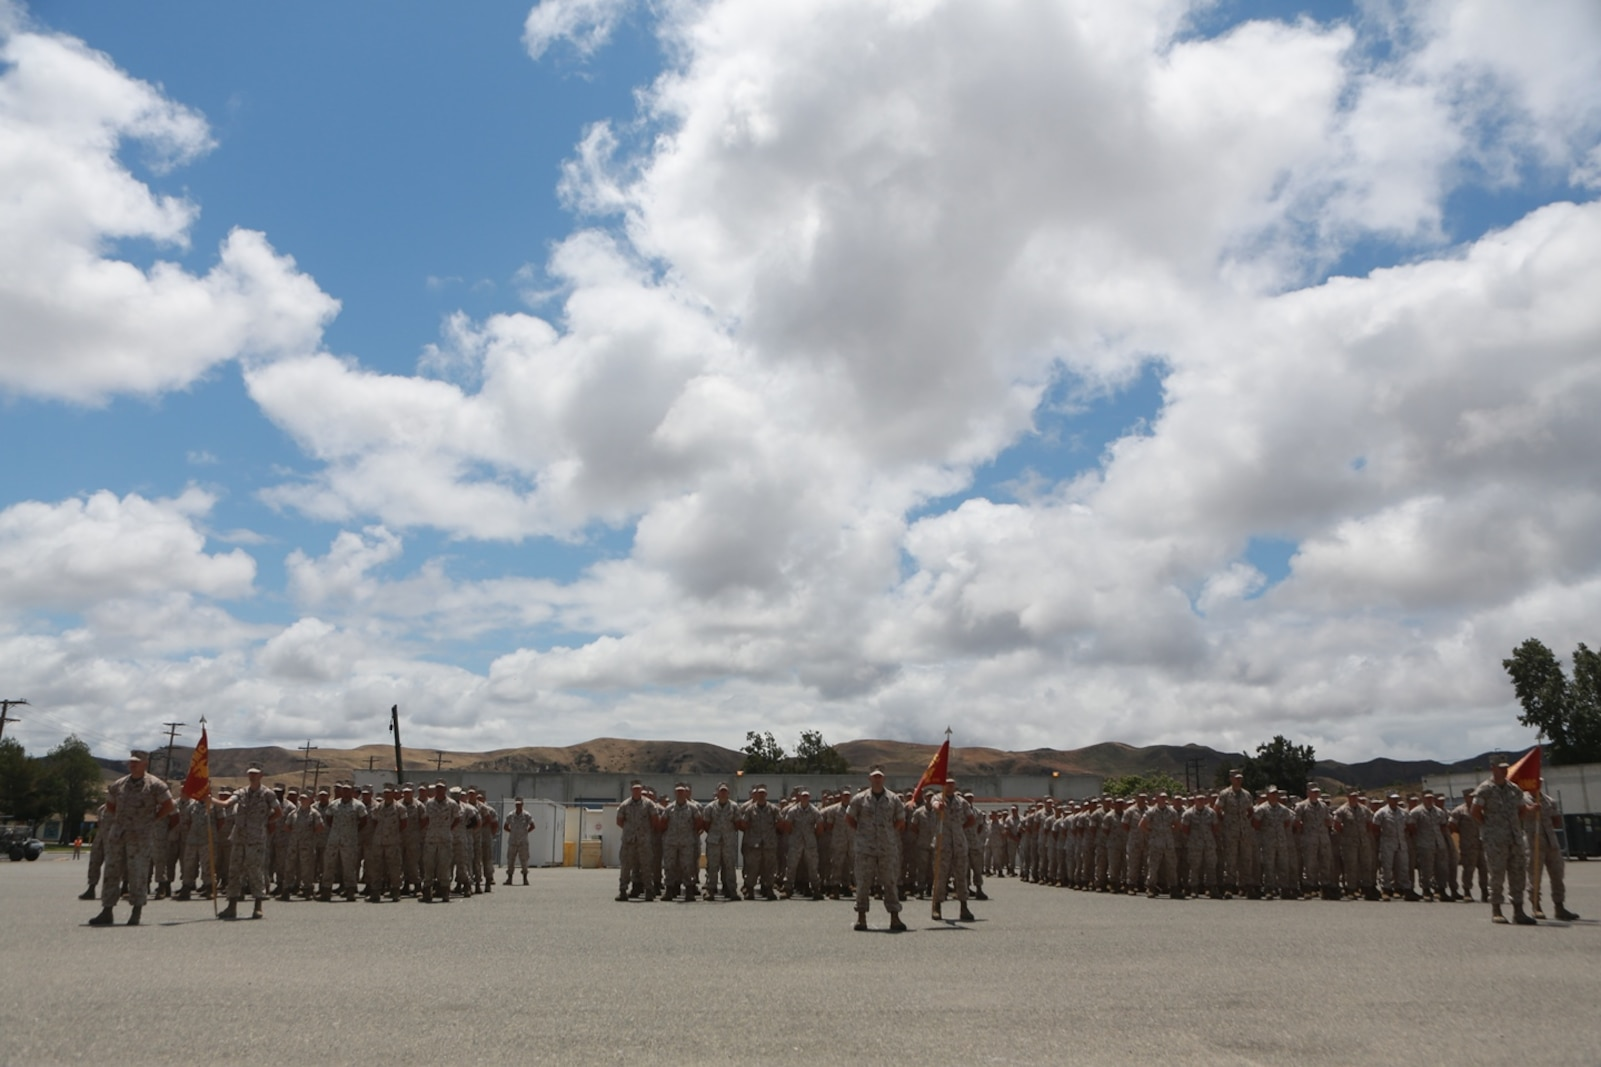 U.S. Marines with 1st Maintenance Battalion, Combat Logistics Regiment 15, 1st Marine Logistics Group await the arrival of Gen. Robert Neller Commandant of the Marine Corps, on Camp Pendleton, Calif., May 24, 2016. Gen. Neller addressed the future of the Marine Corps and answered questions from the Marines. (U.S. Marine Corps photo by Sgt. Rodion Zabolotniy, Combat Camera, Camp Pendleton/RELEASED)